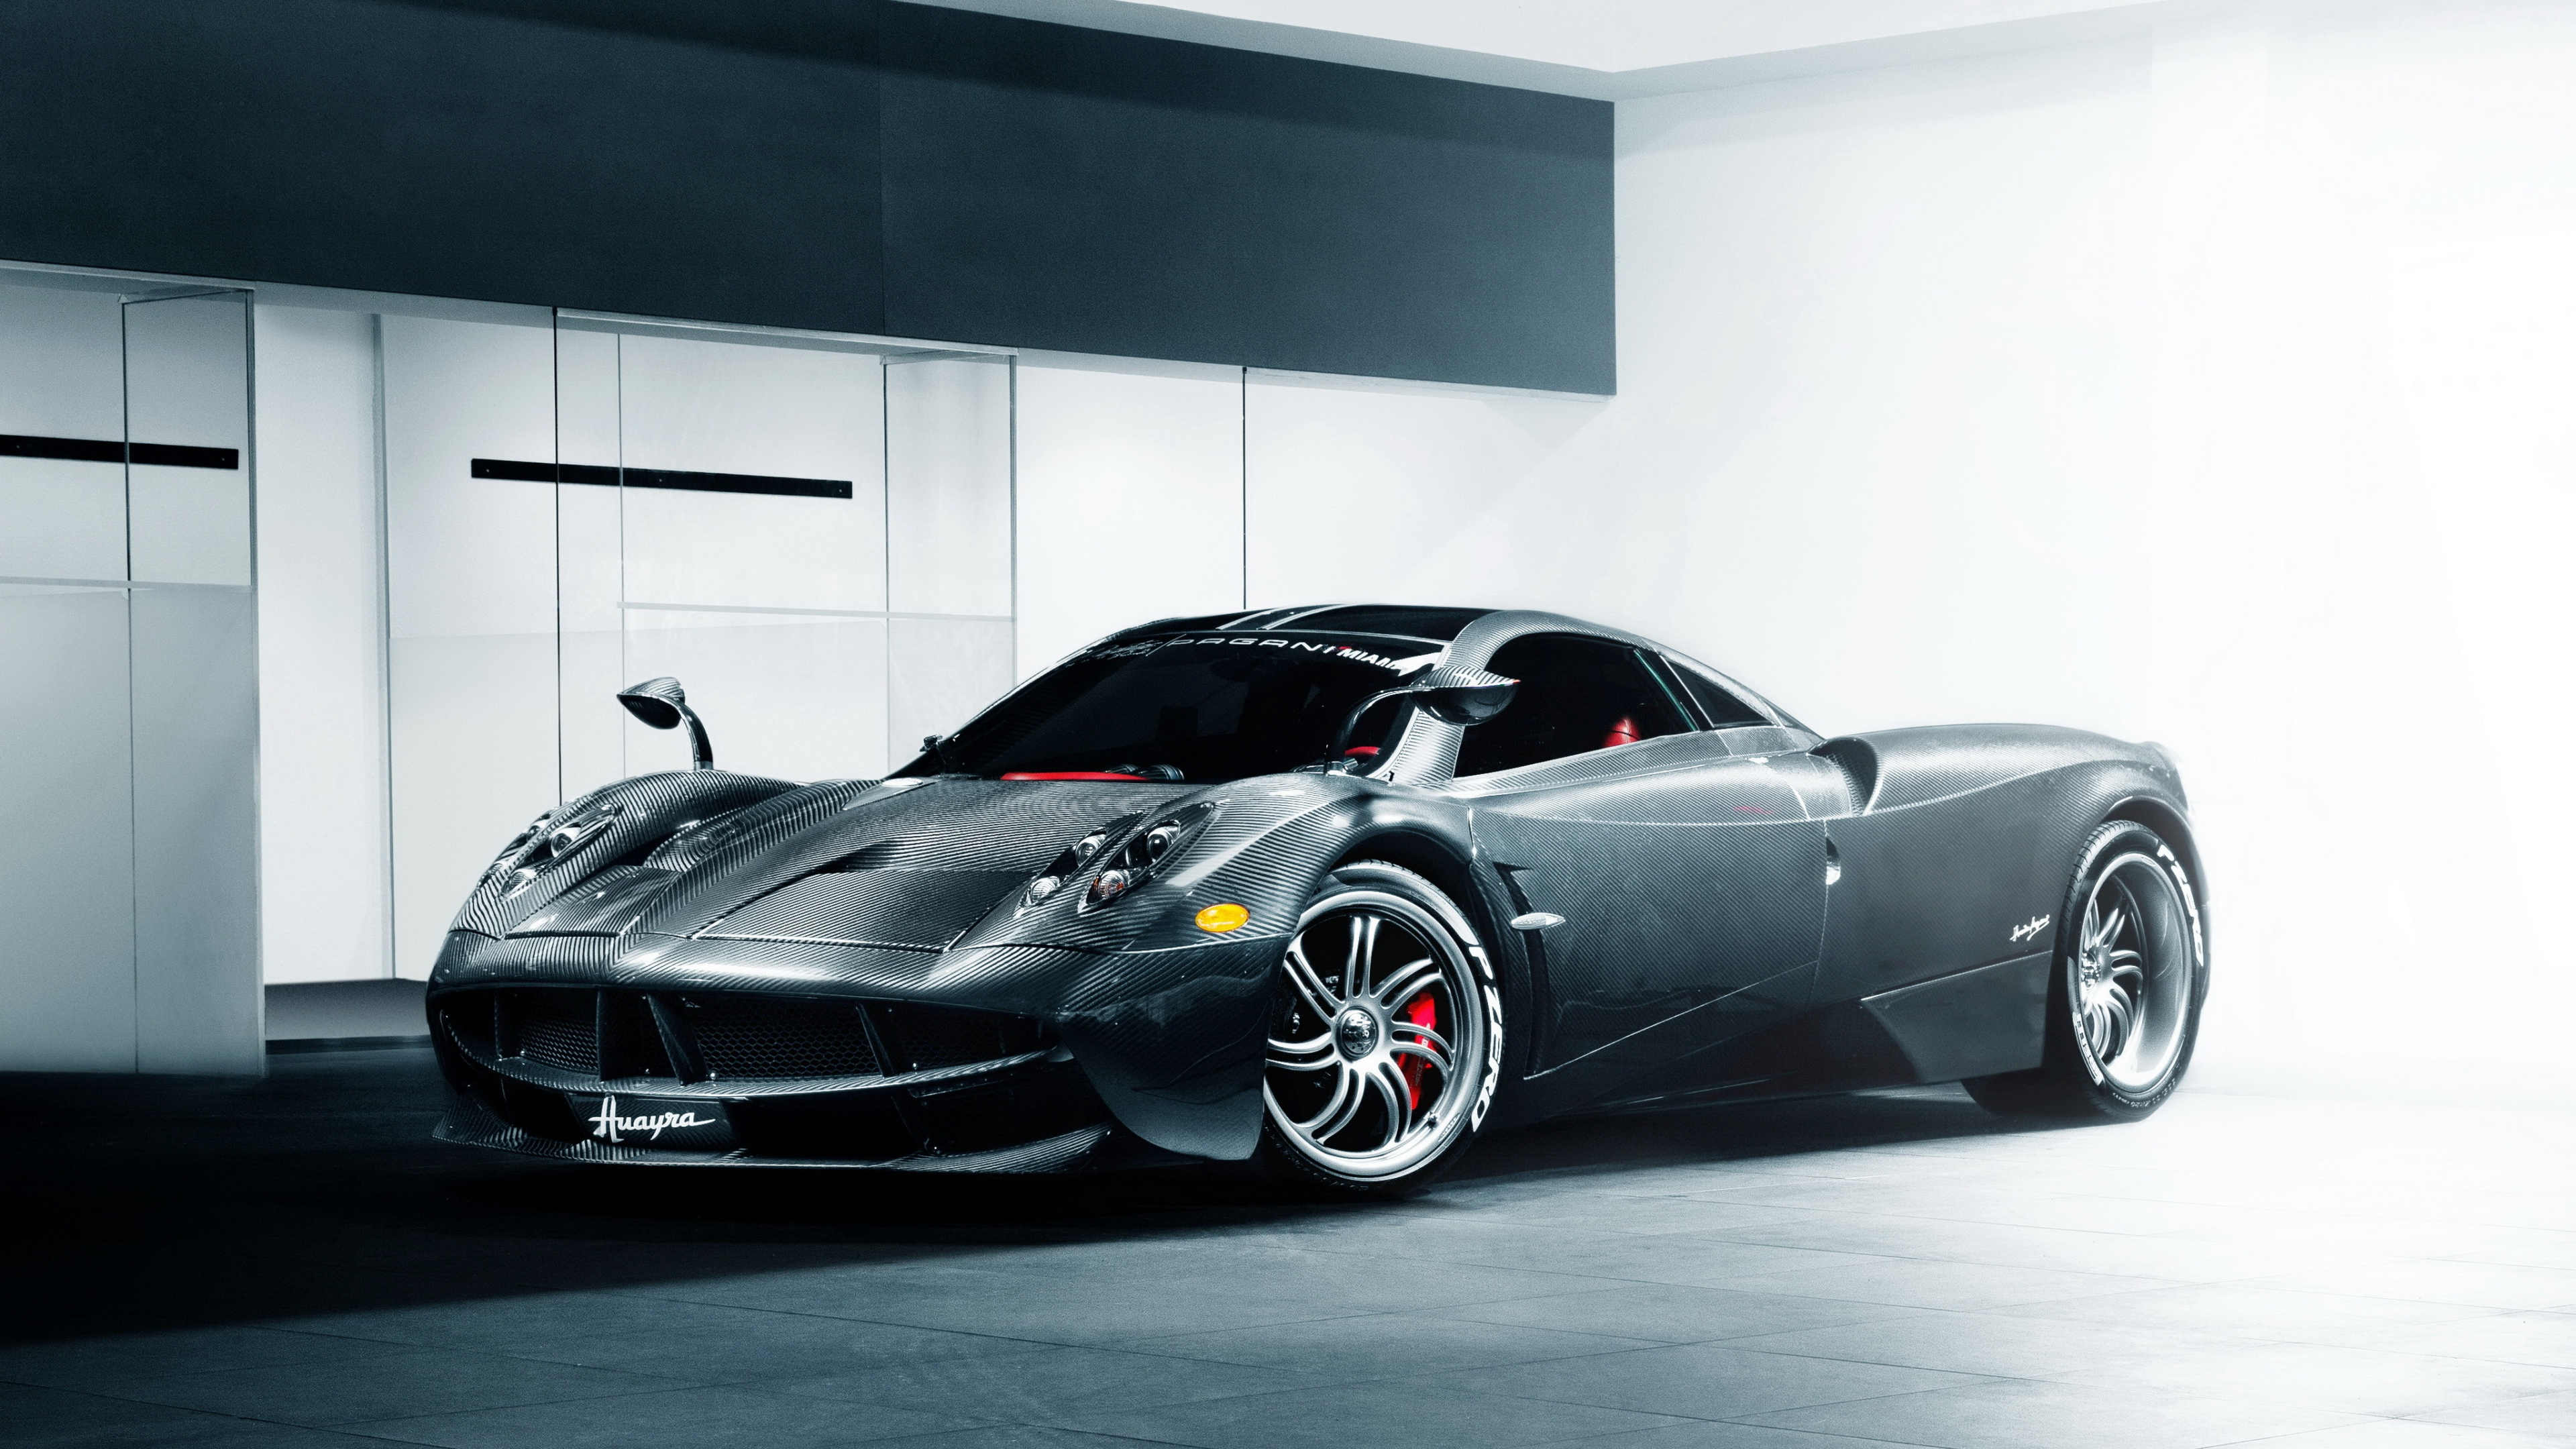 640x960 Pagani Huayra iPhone 4, iPhone 4S HD 4k Wallpapers ...